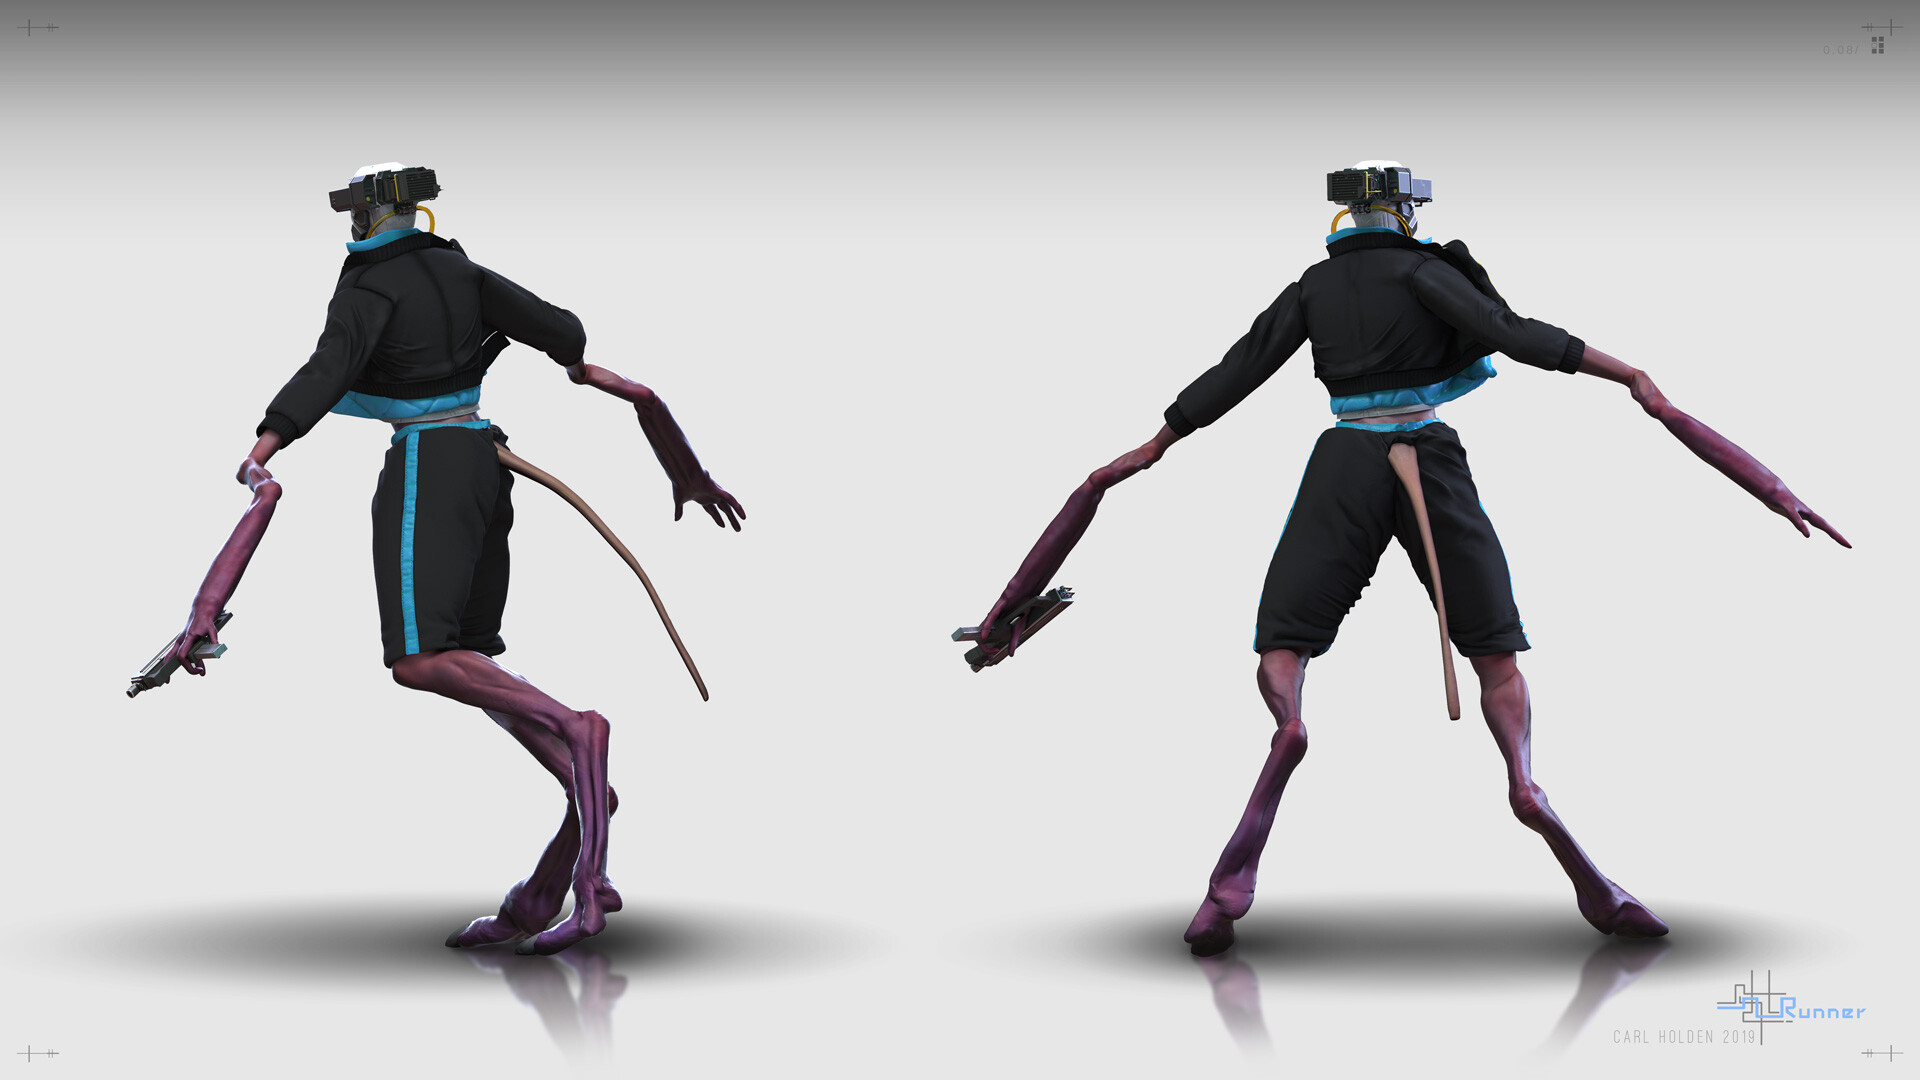 Carl holden 19 runner turnaround 02 wip